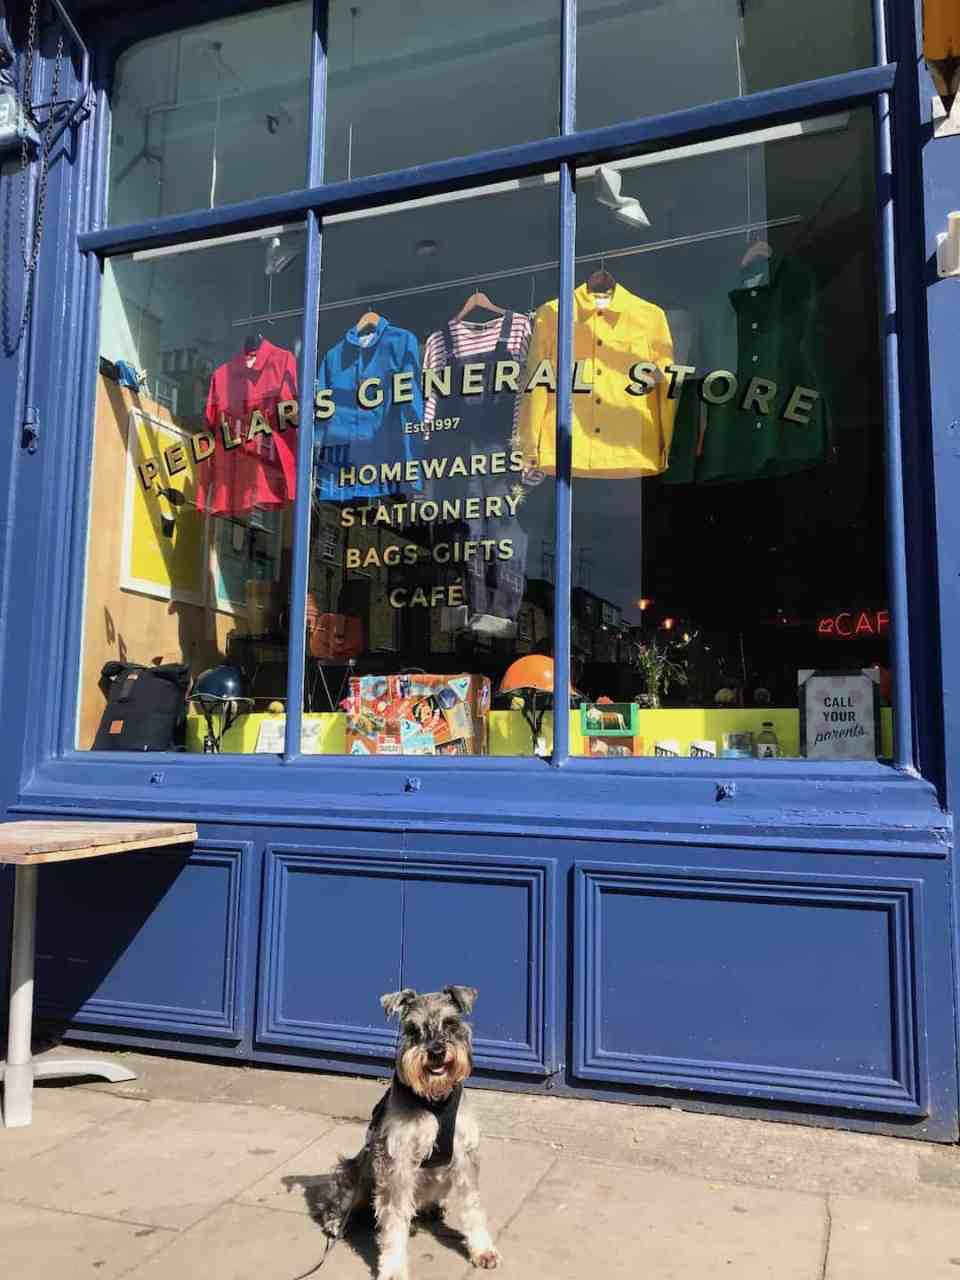 My Dog Friendly London By Pepper Chung the Schnauzer - Dog Friendly Notting Hill 16